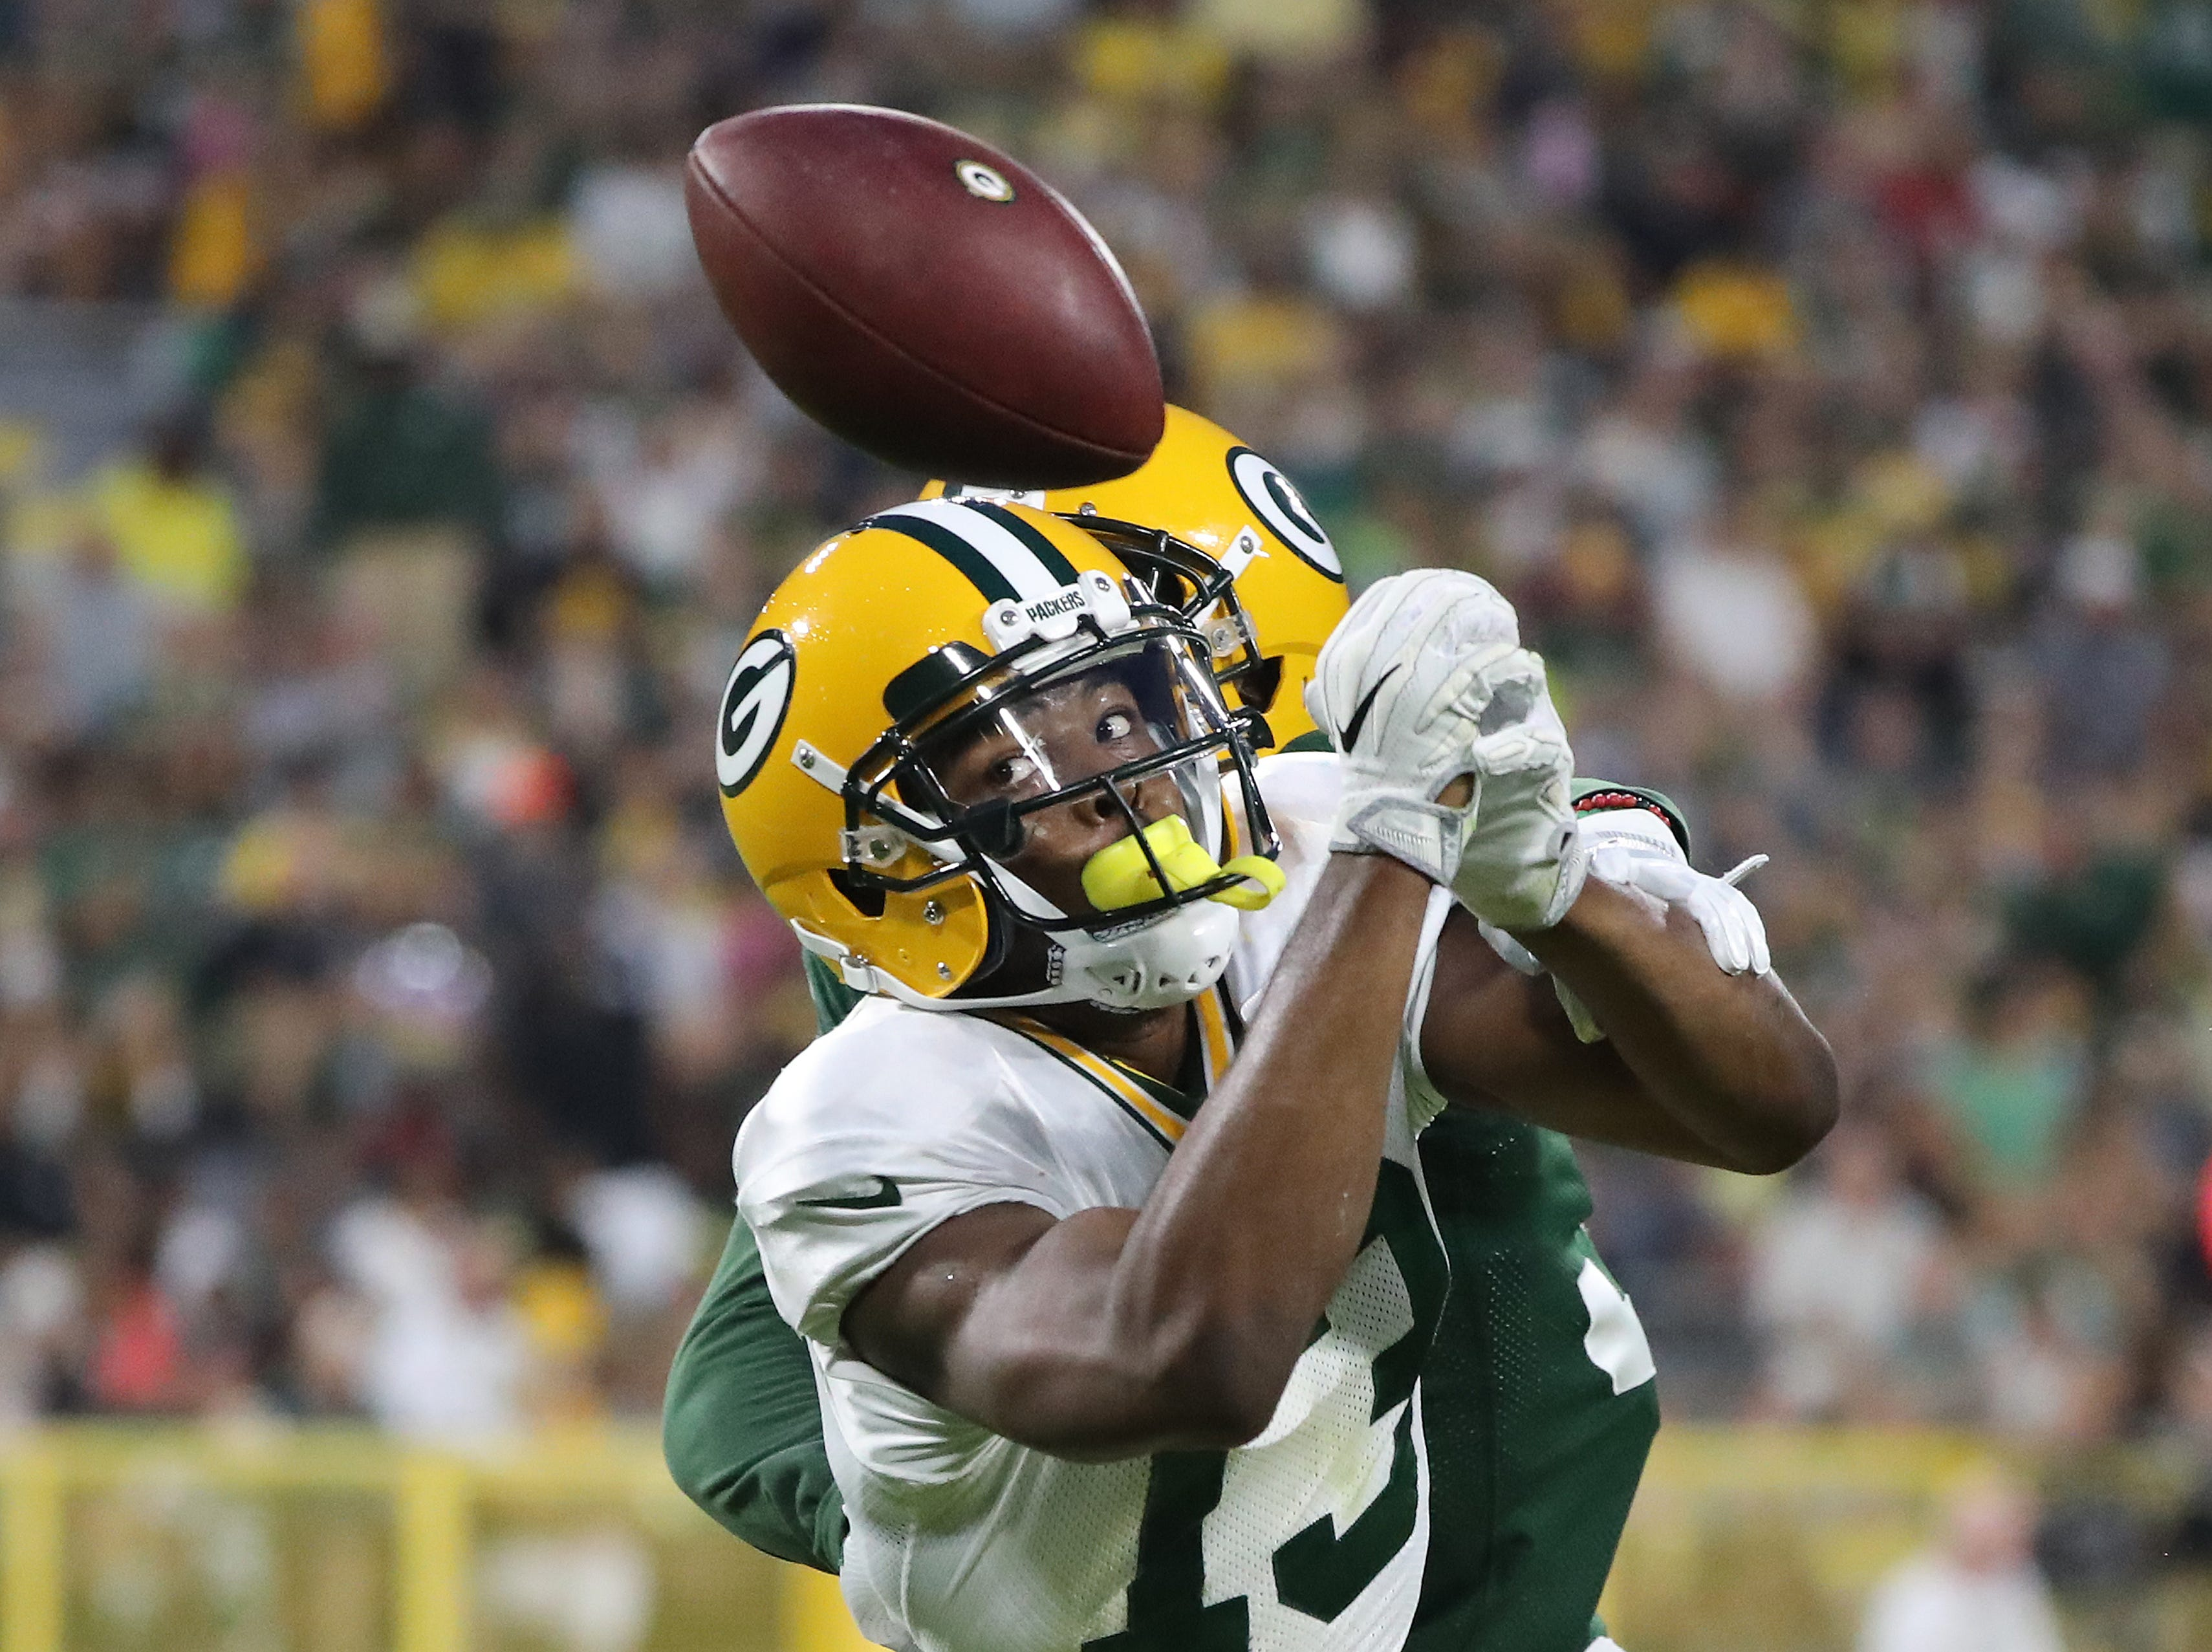 Receiver Adonis Jennings (13) can't quite make a catch during Green Bay Packers Family Night  Saturday, August 4, 2018 at Lambeau Field in Green Bay, Wis.,